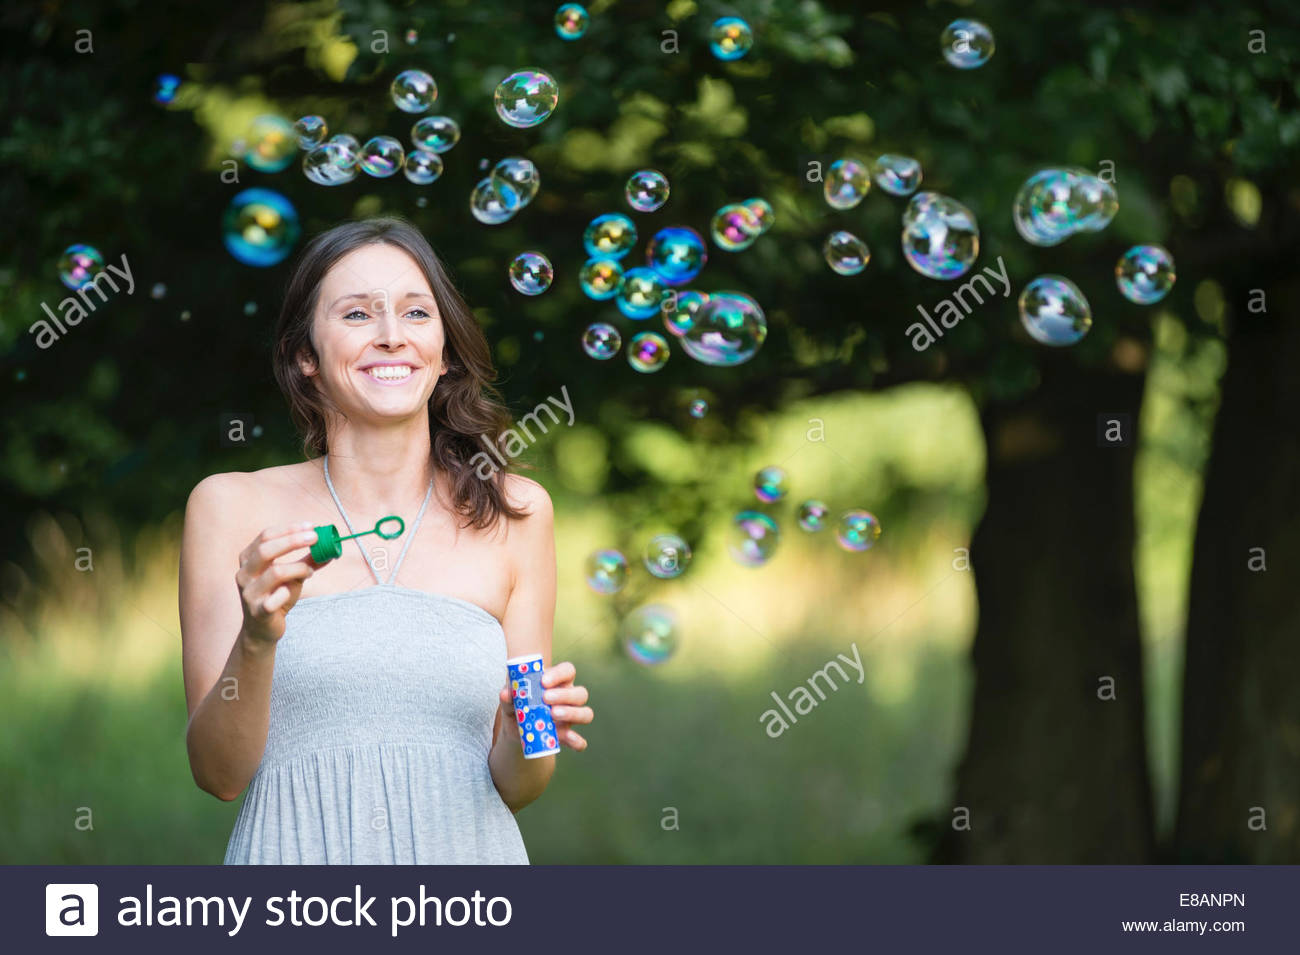 Mid adult woman blowing bubbles in woodland Stock Photo